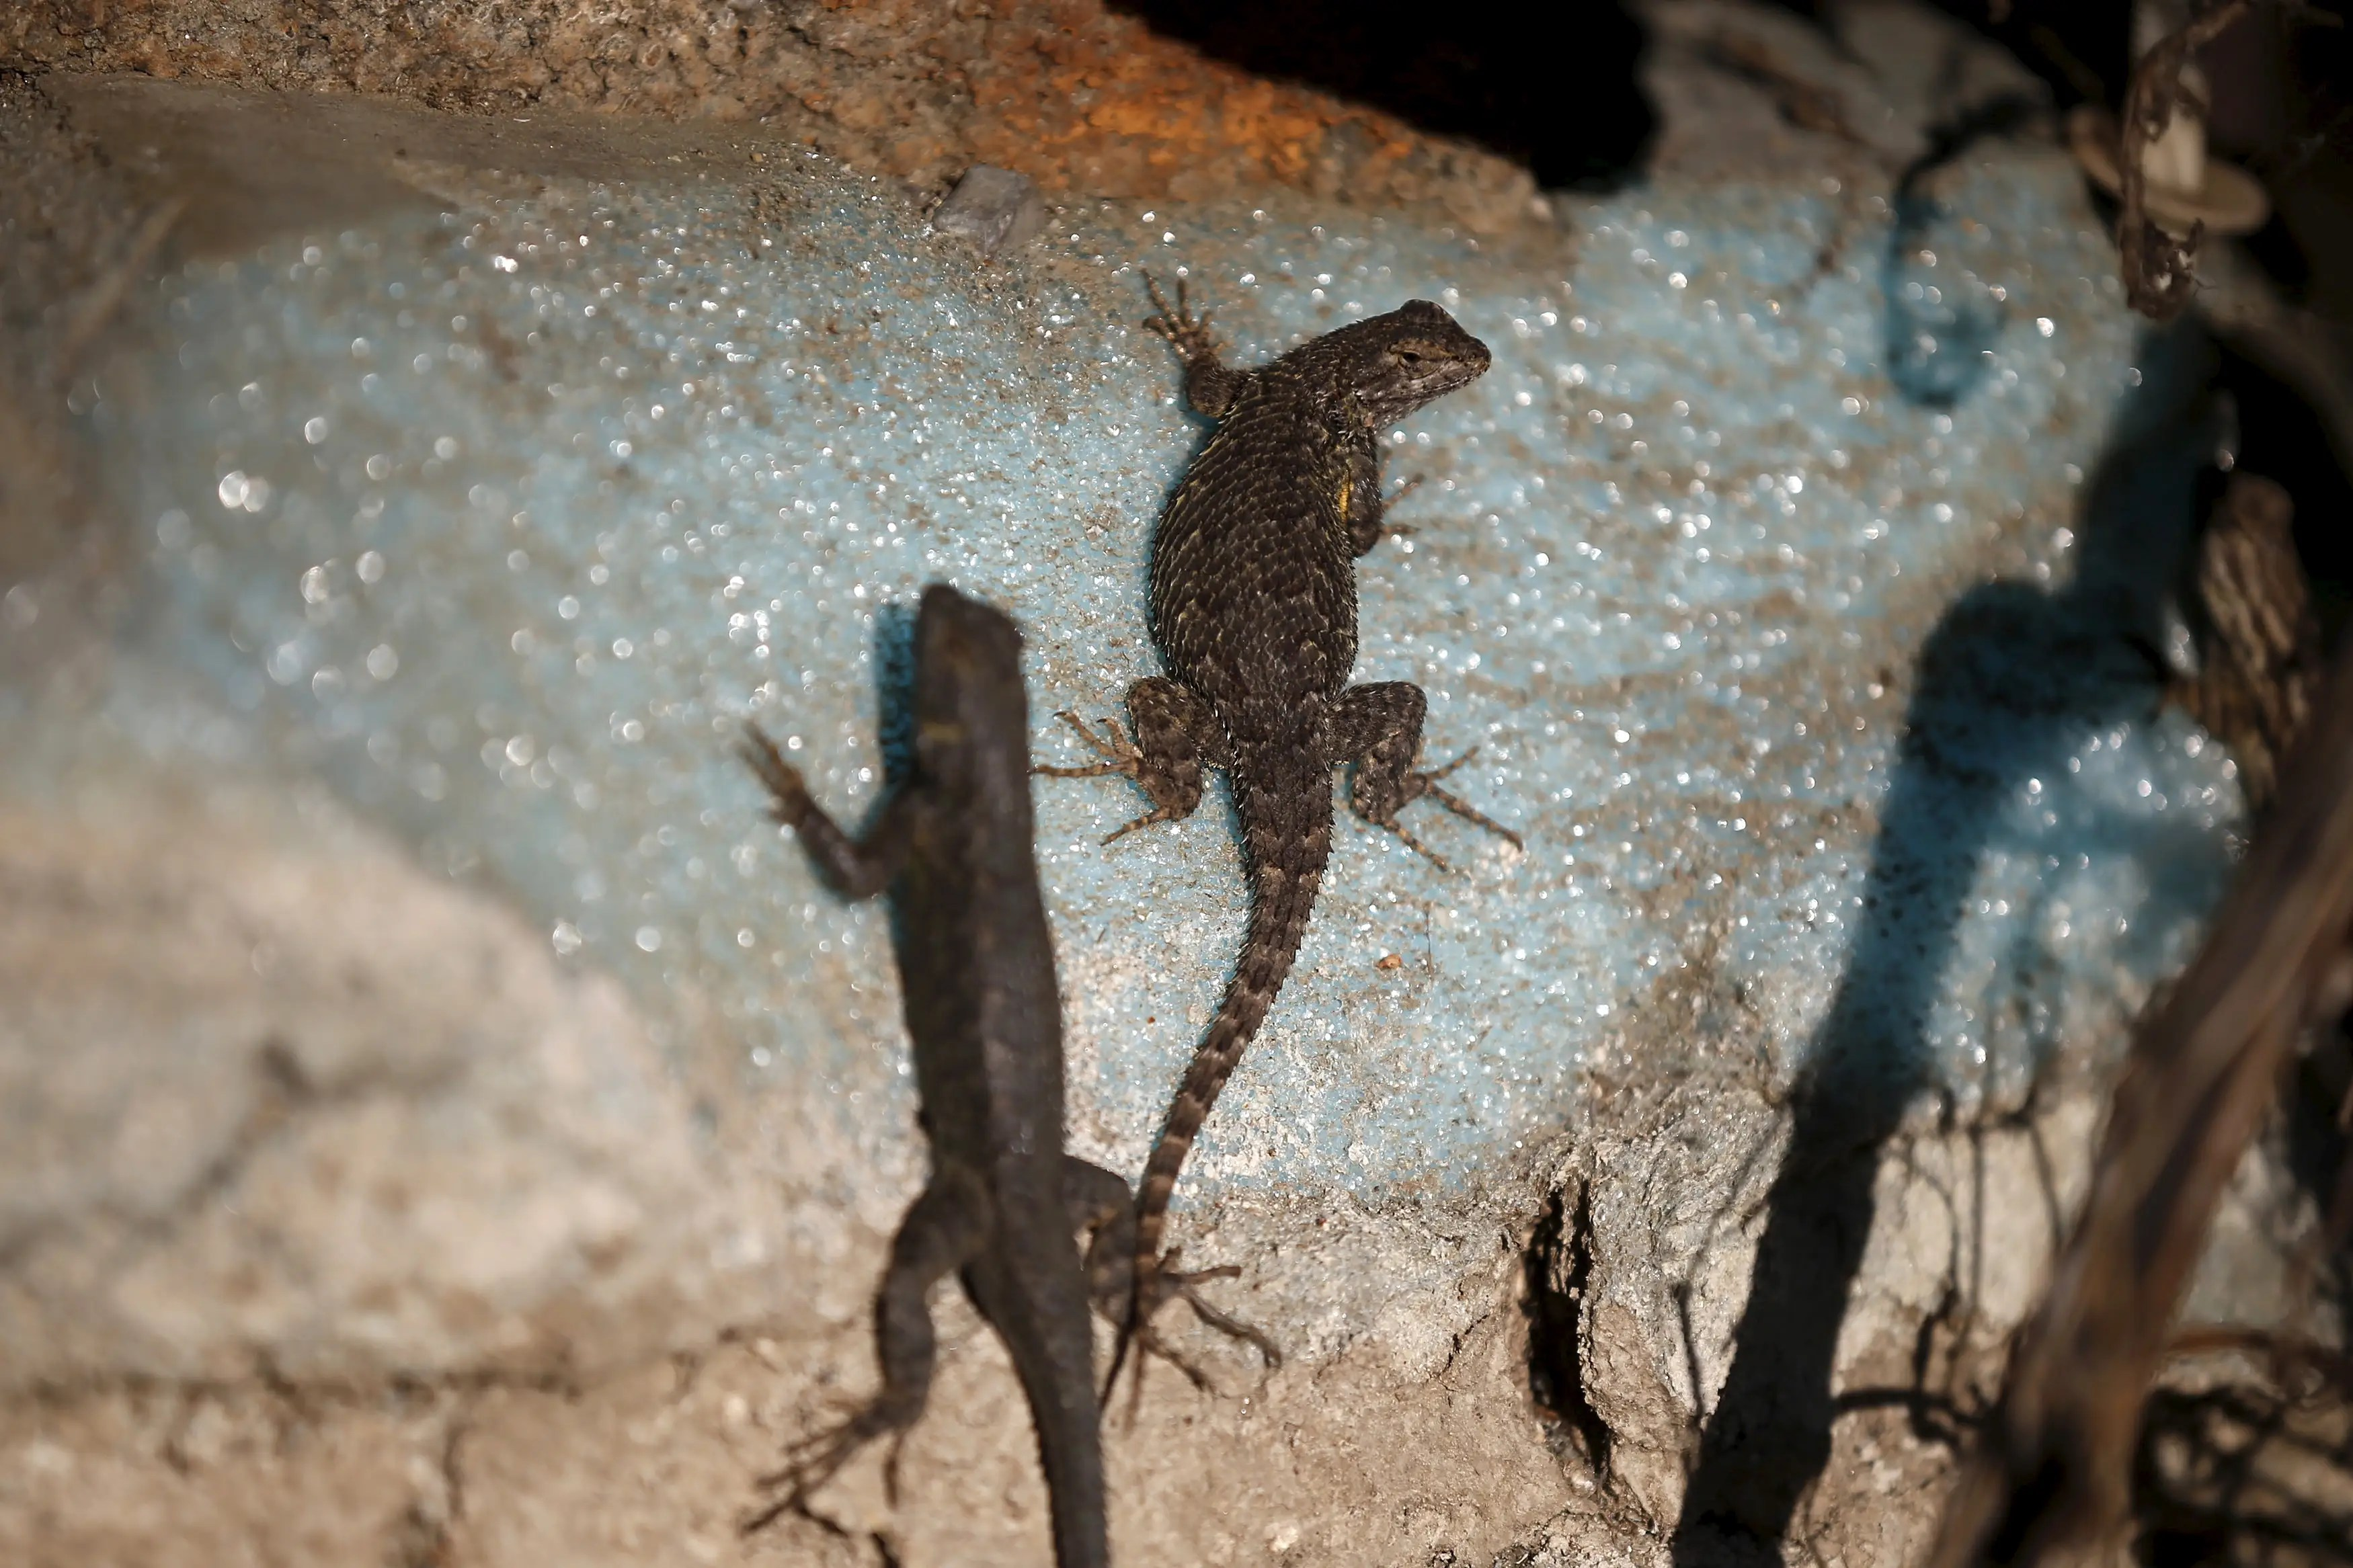 Lizards sun themselves on a dried out dock at Lake Cachuma in Santa Barbara, California.